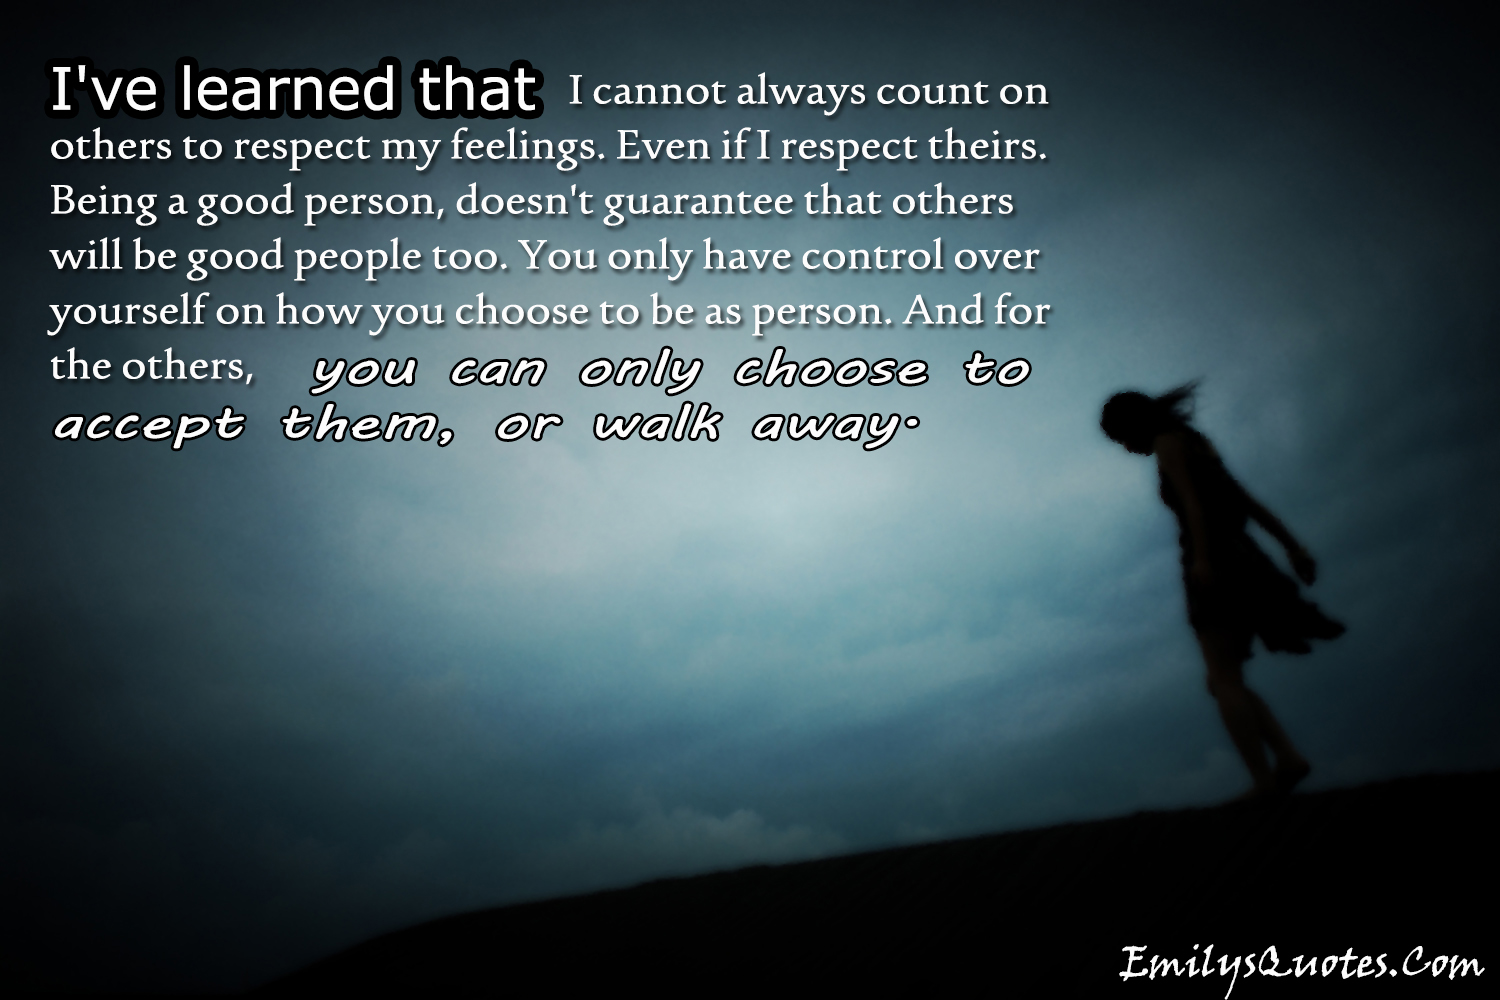 Quotes Respect Quotes About Respect  Aol Image Search Results